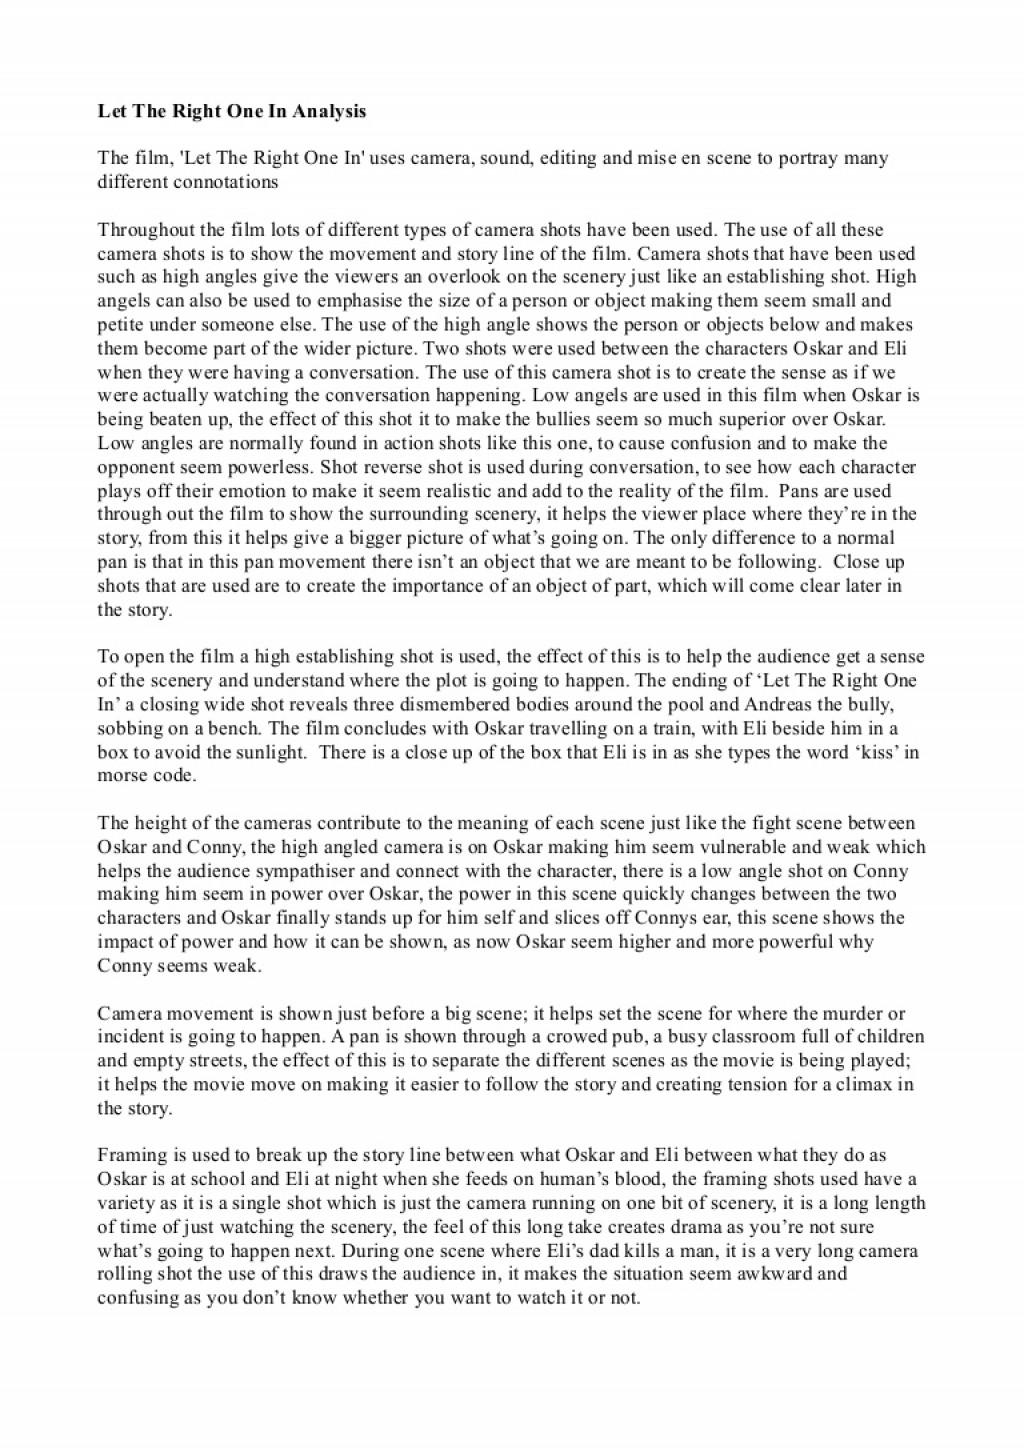 005 Essay Example Let The Right One In Phpapp01 Thumbnail Stunning Friendship Emerson Pdf By Ralph Waldo Analysis Title Ideas Large